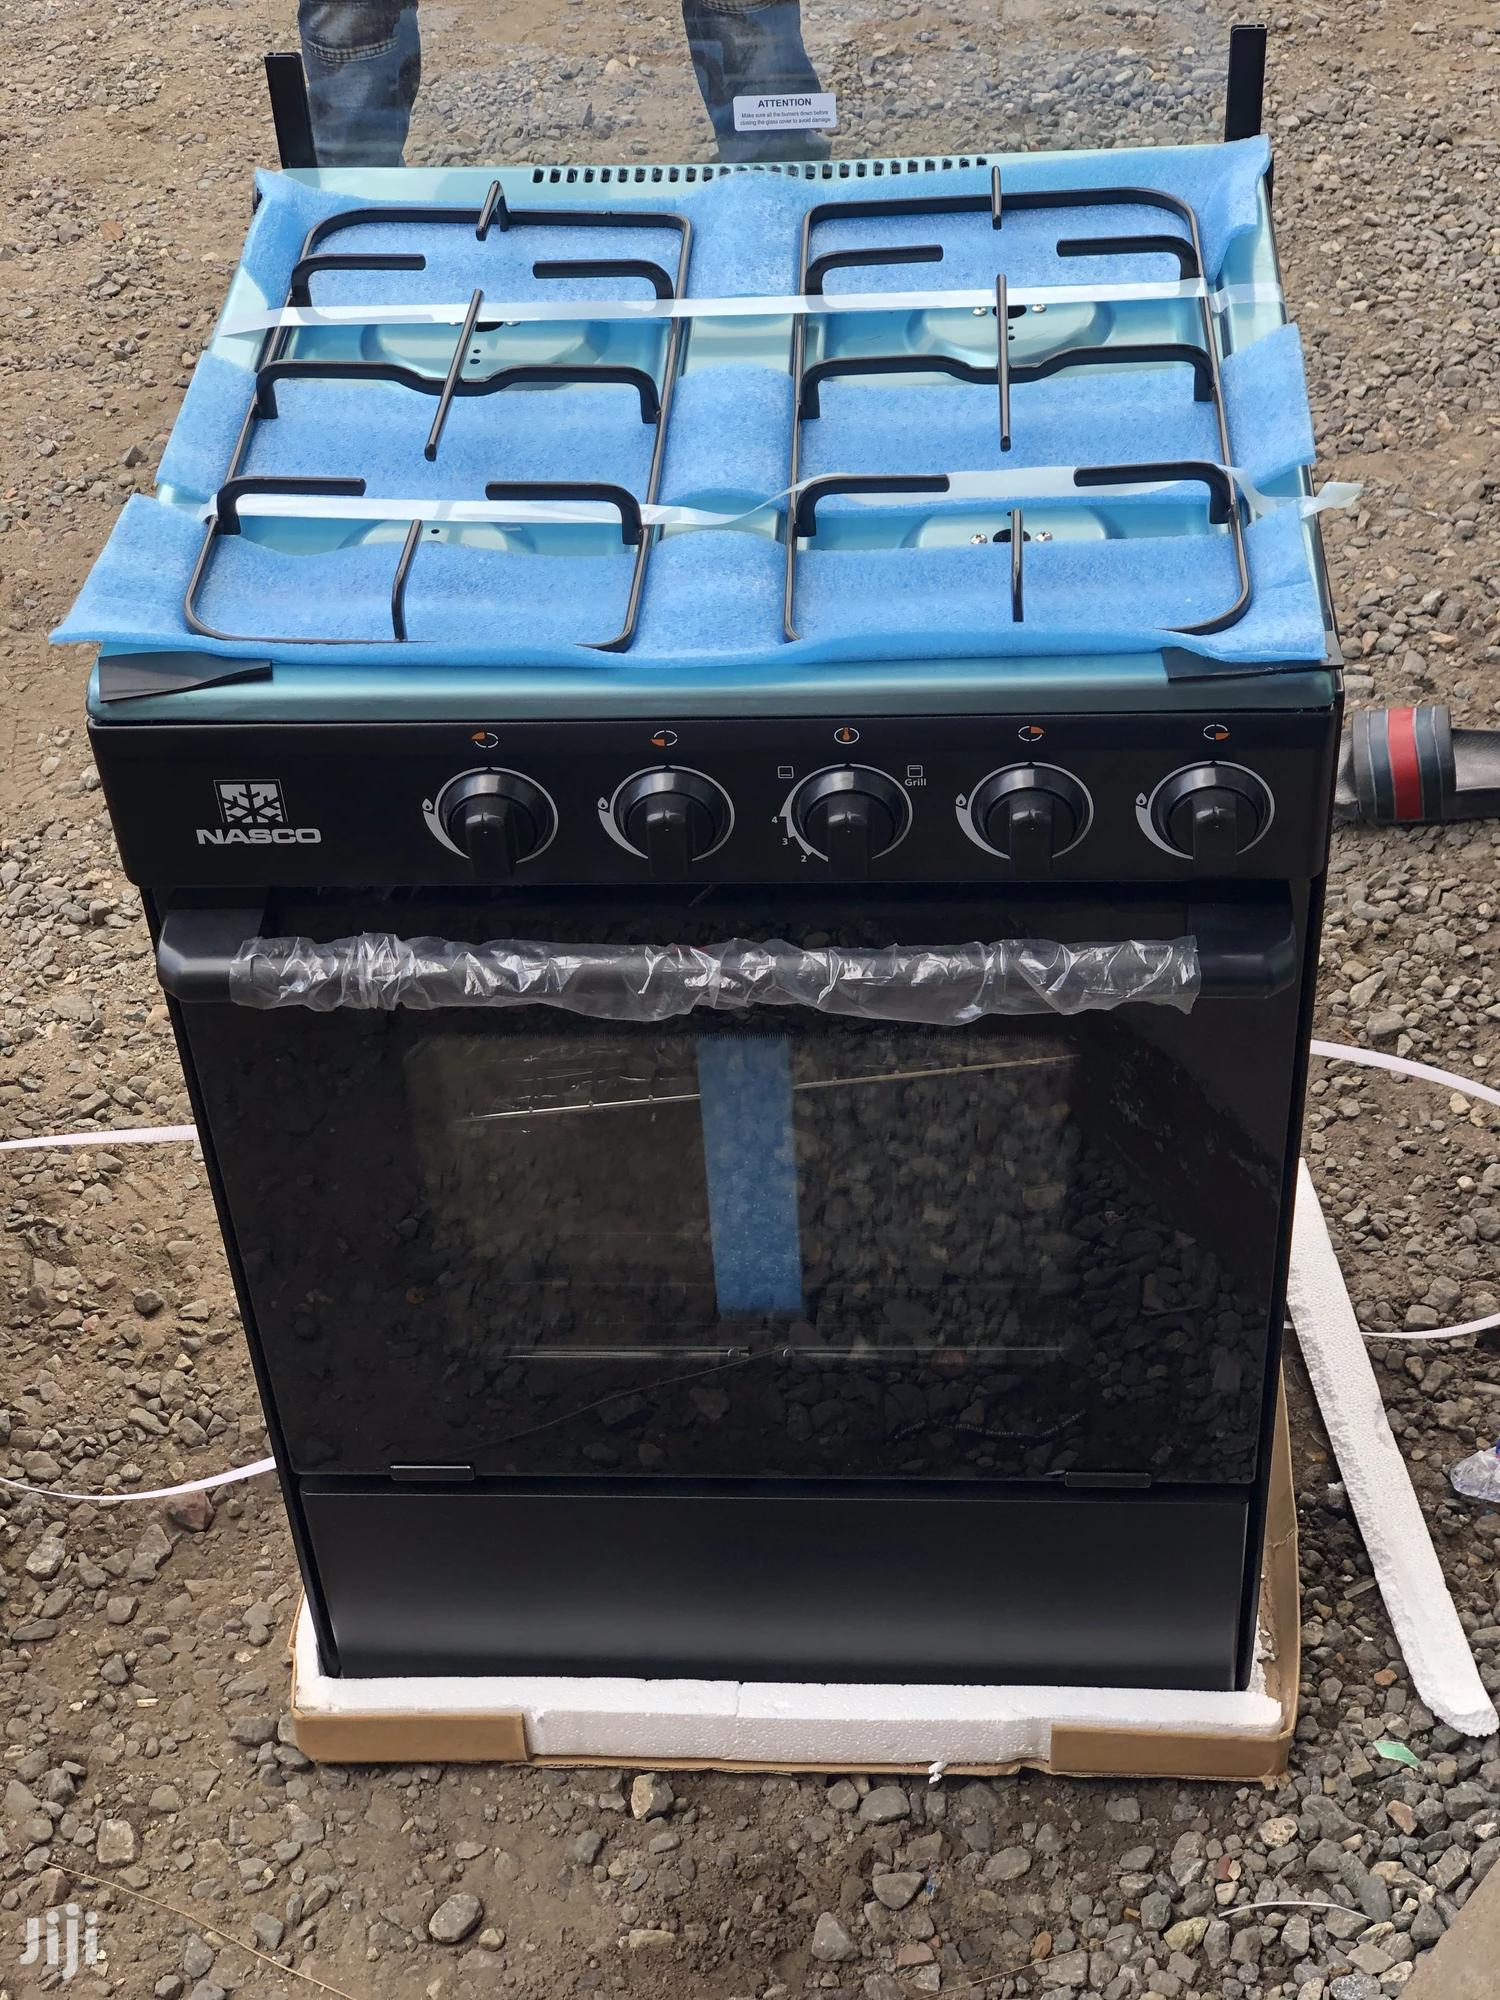 60x60 Nasco 4 Burner Gas Cooker With Oven & Grill